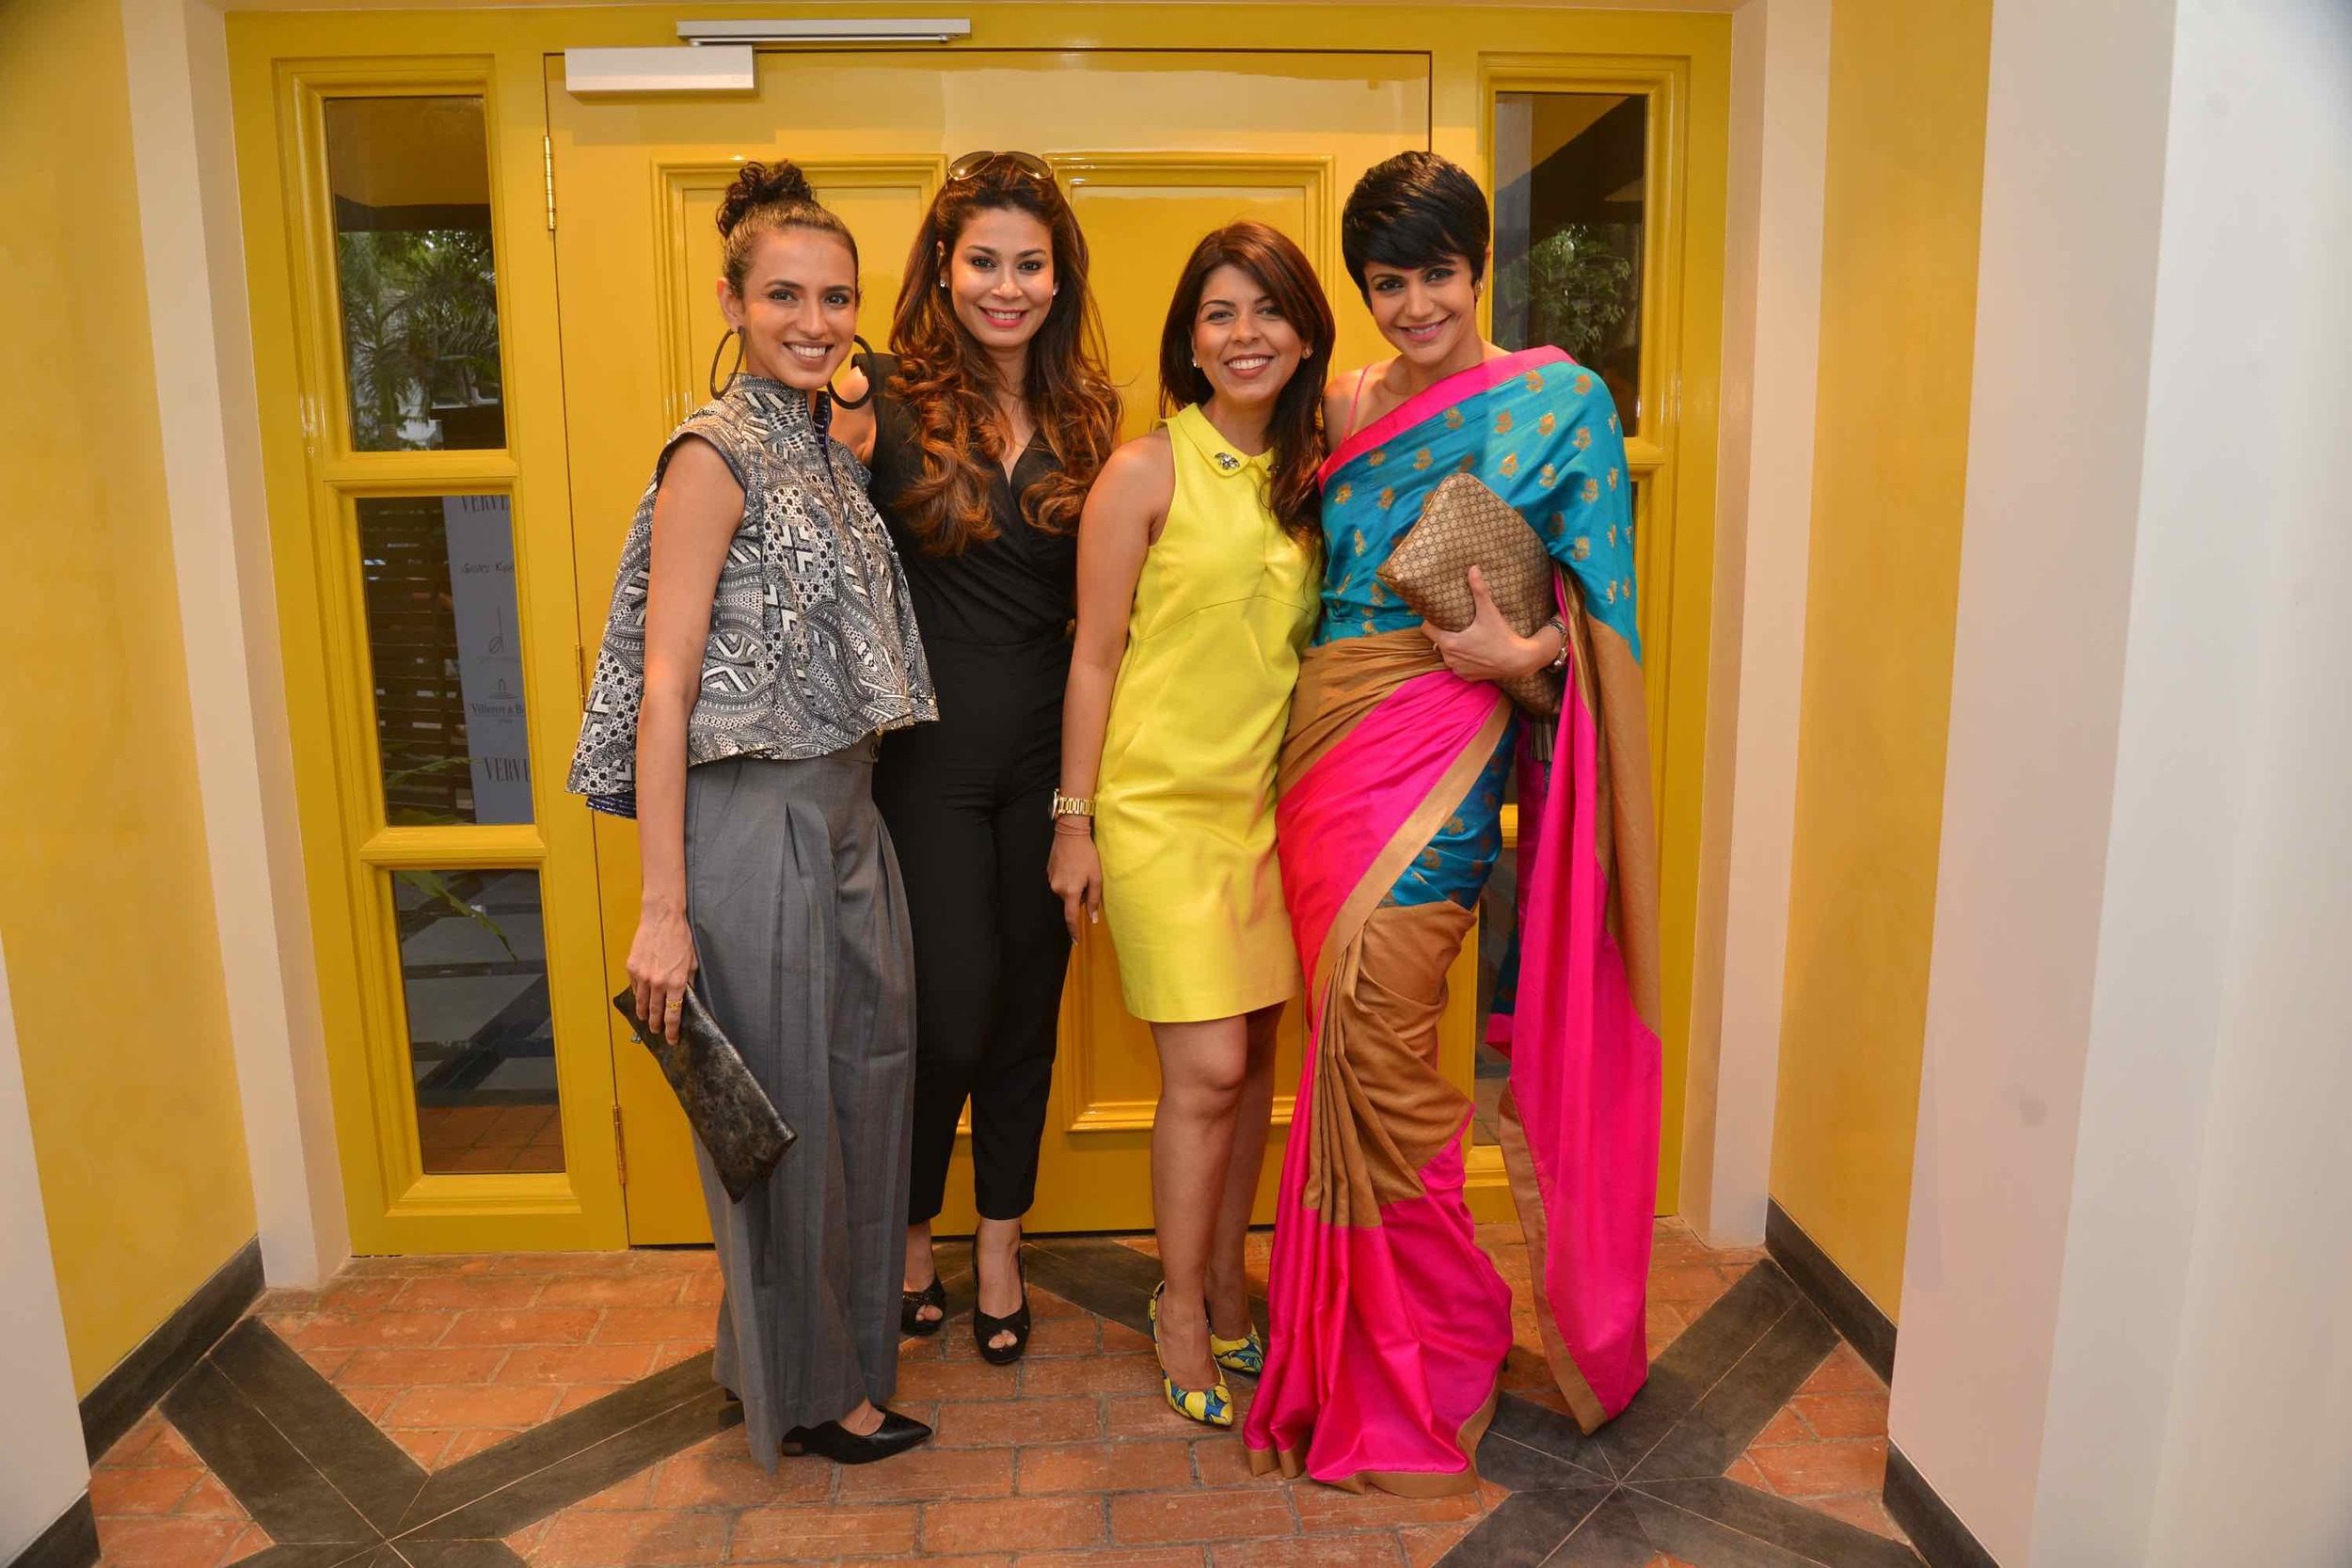 Aparna Badlani, Shaheen Abbas, Tanaaz Bhatia And Mandira Bedi At The Villeroy & Boch High Tea